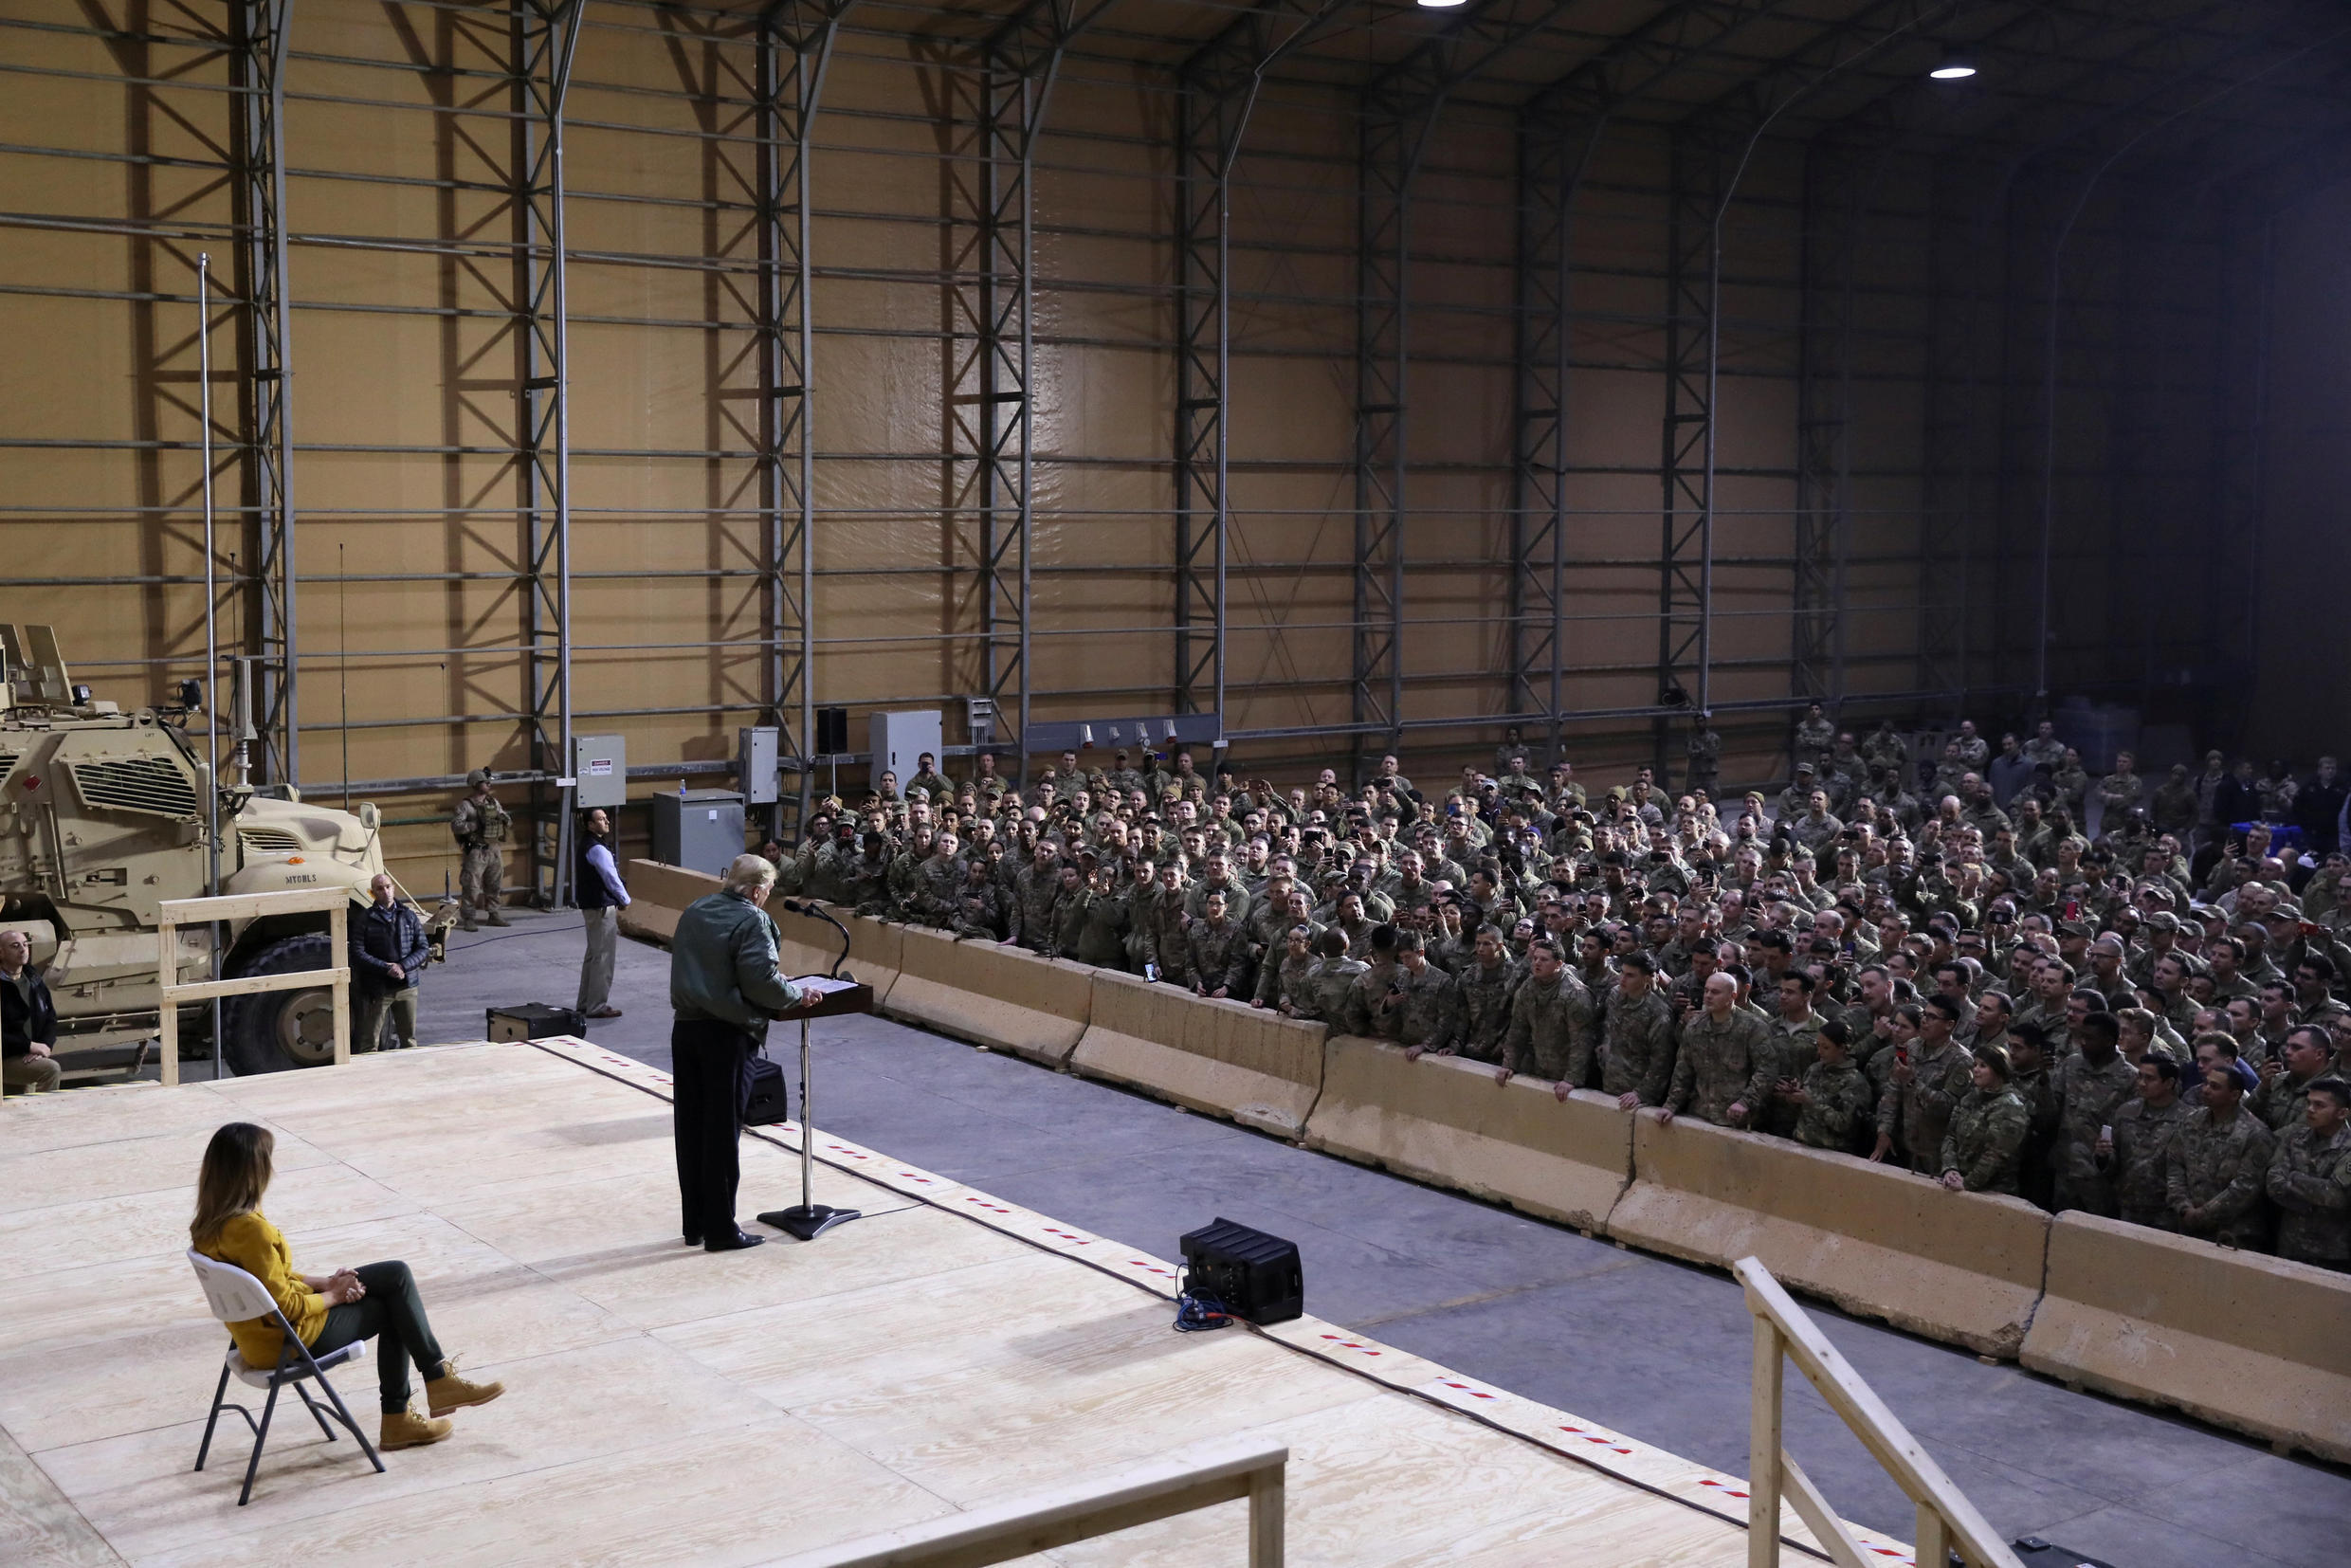 U.S. President Donald Trump delivers remarks to U.S. troops in an unannounced visit to Al Asad Air Base, Iraq December 26, 2018.